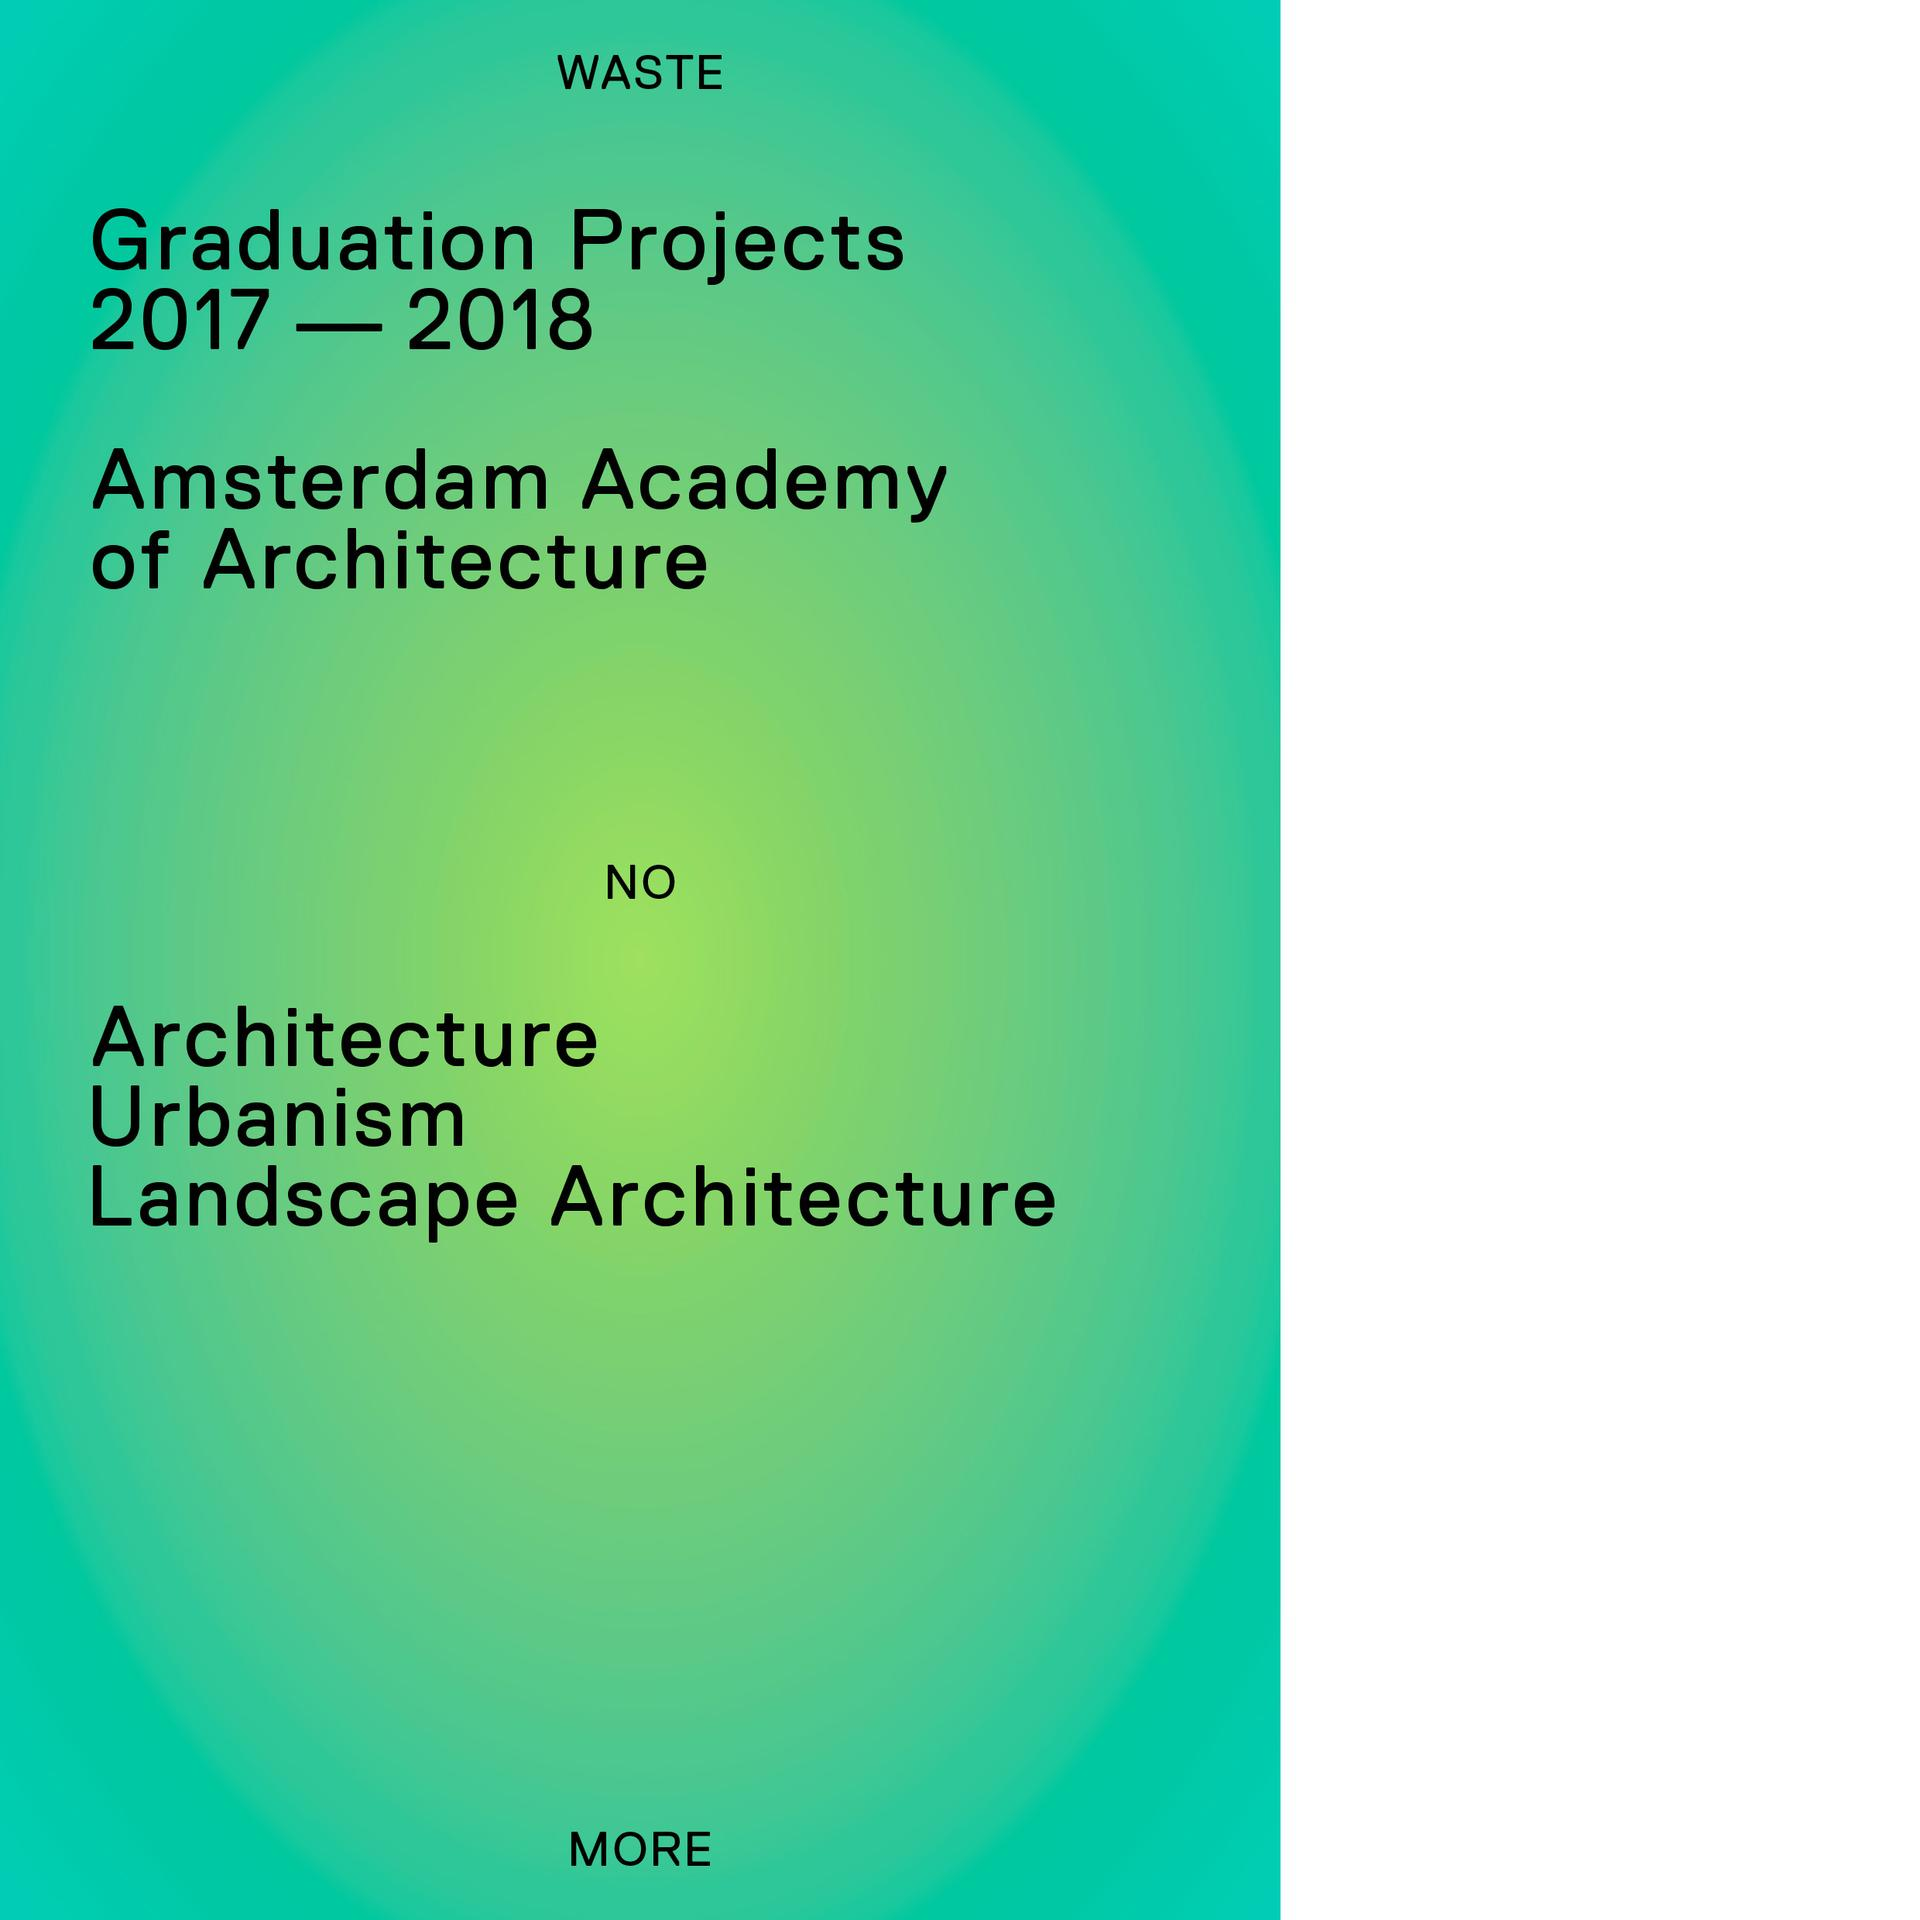 Graduation Projects 2017-2018